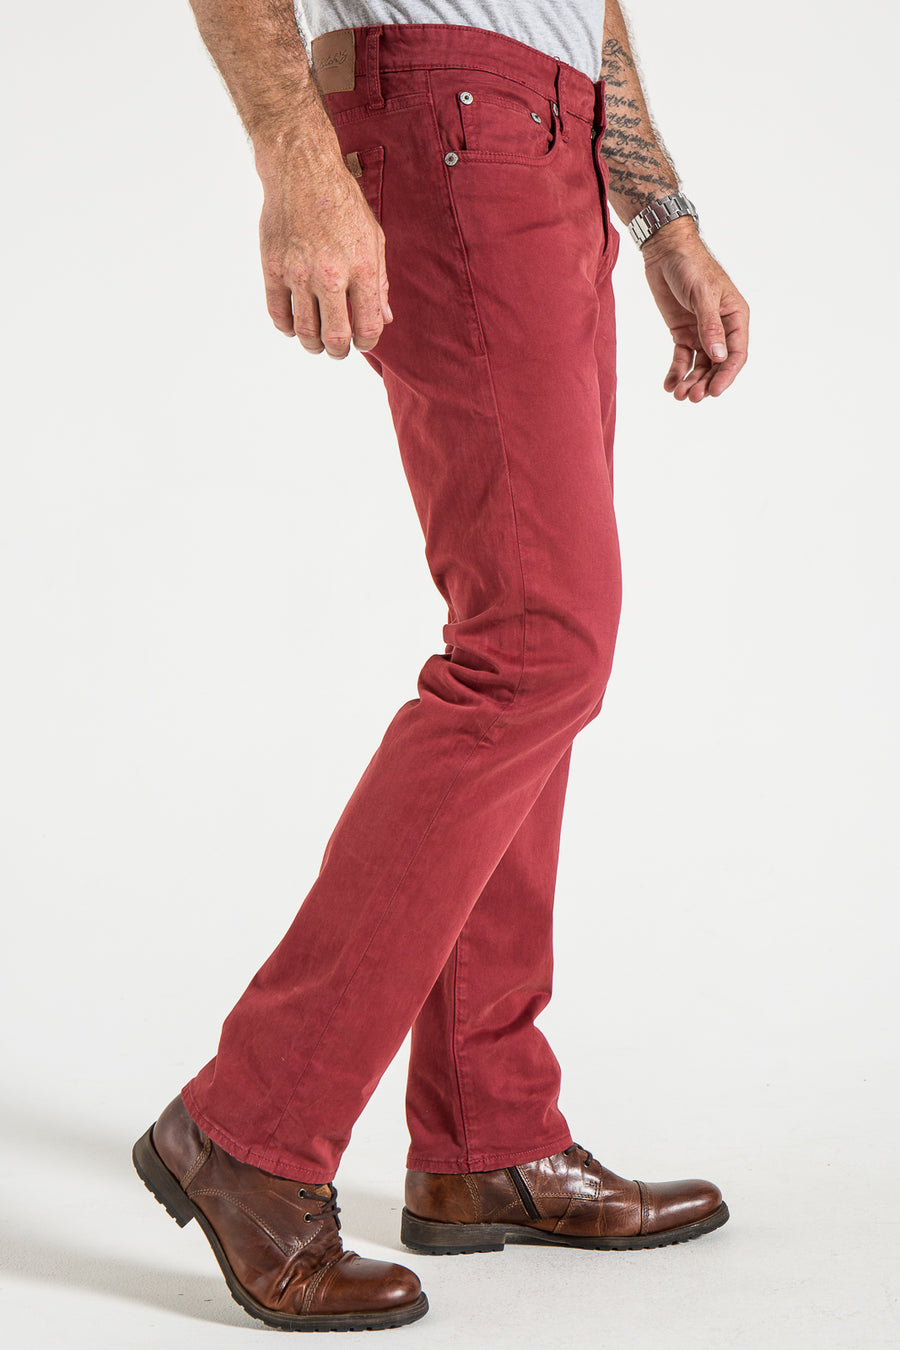 BARFLY SLIM IN CRIMSON SATEEN TWILL